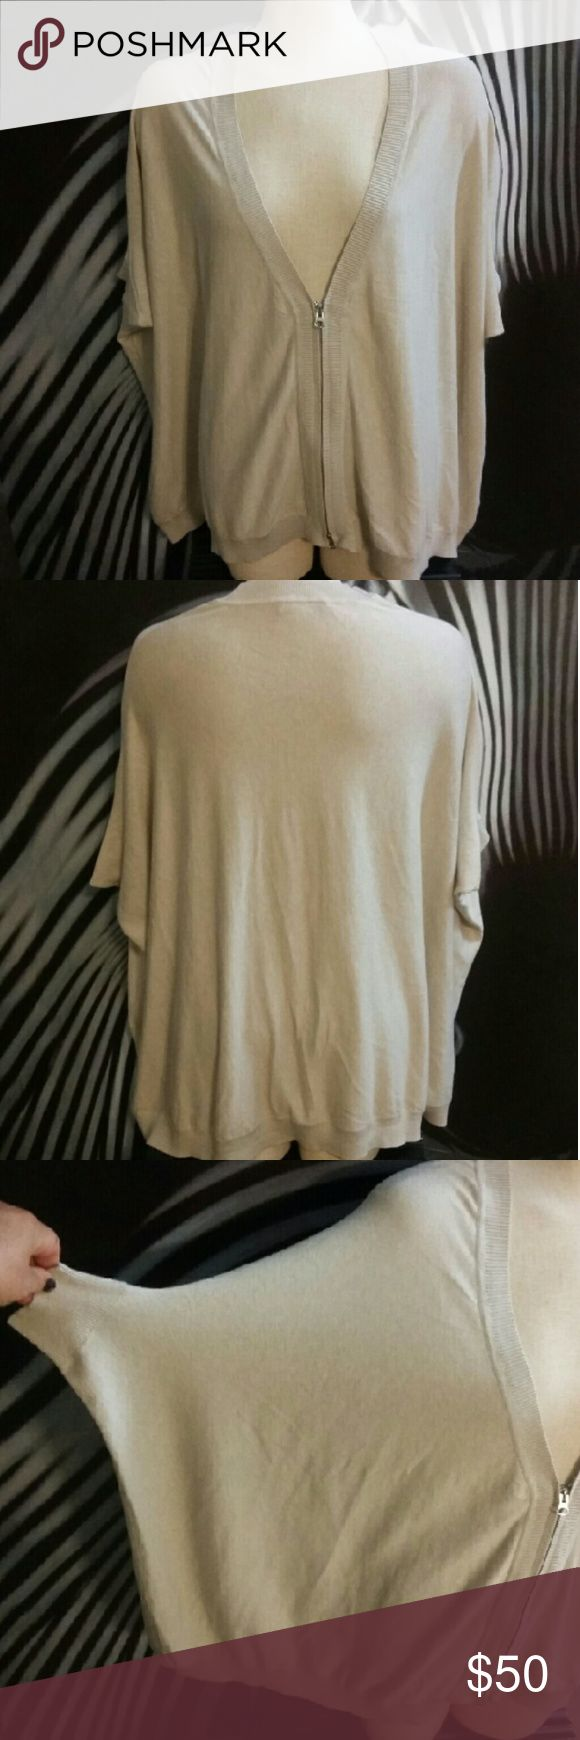 Haute Hippie Nude Cardigan sz . XS/S/M Haute Hippie Nude Cardigan sz . XS/S/M Excellent used condition  Very wide cut...flowy silky Knit Sleeve length is 3/4 Haute Hippie Sweaters Cardigans